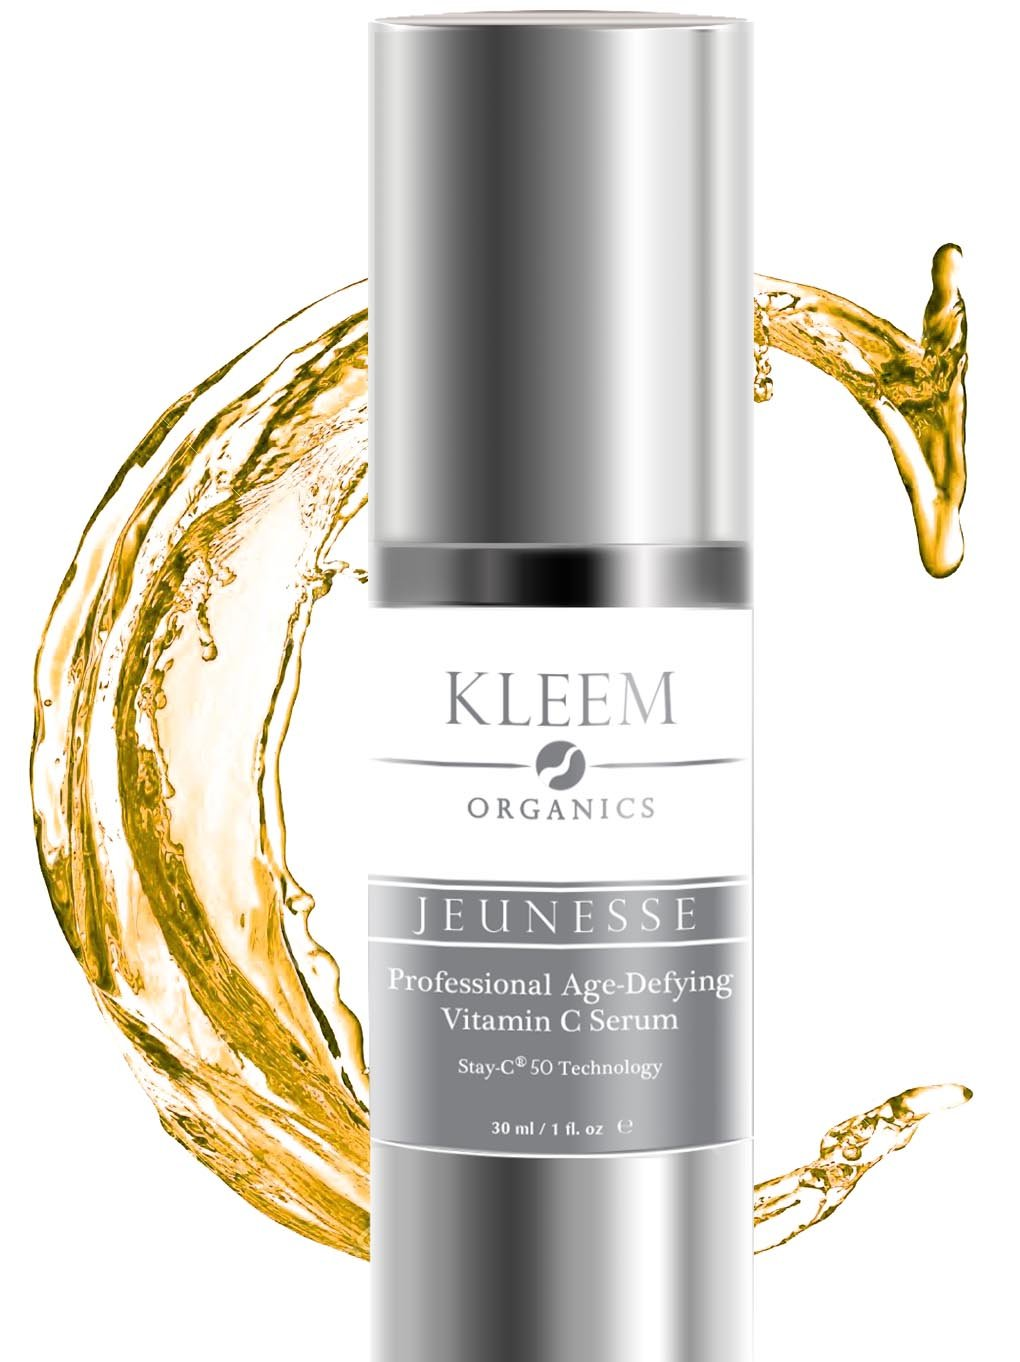 Kleem Organics® 20% VITAMIN C & E SERUM for Face with 10% Hyaluronic Acid, 1 Oz. The Most PROFESSIONAL Anti Aging & Anti-Wrinkle Treatment, Skin Tightening and Dark Spot Removal. Doctor Trusted